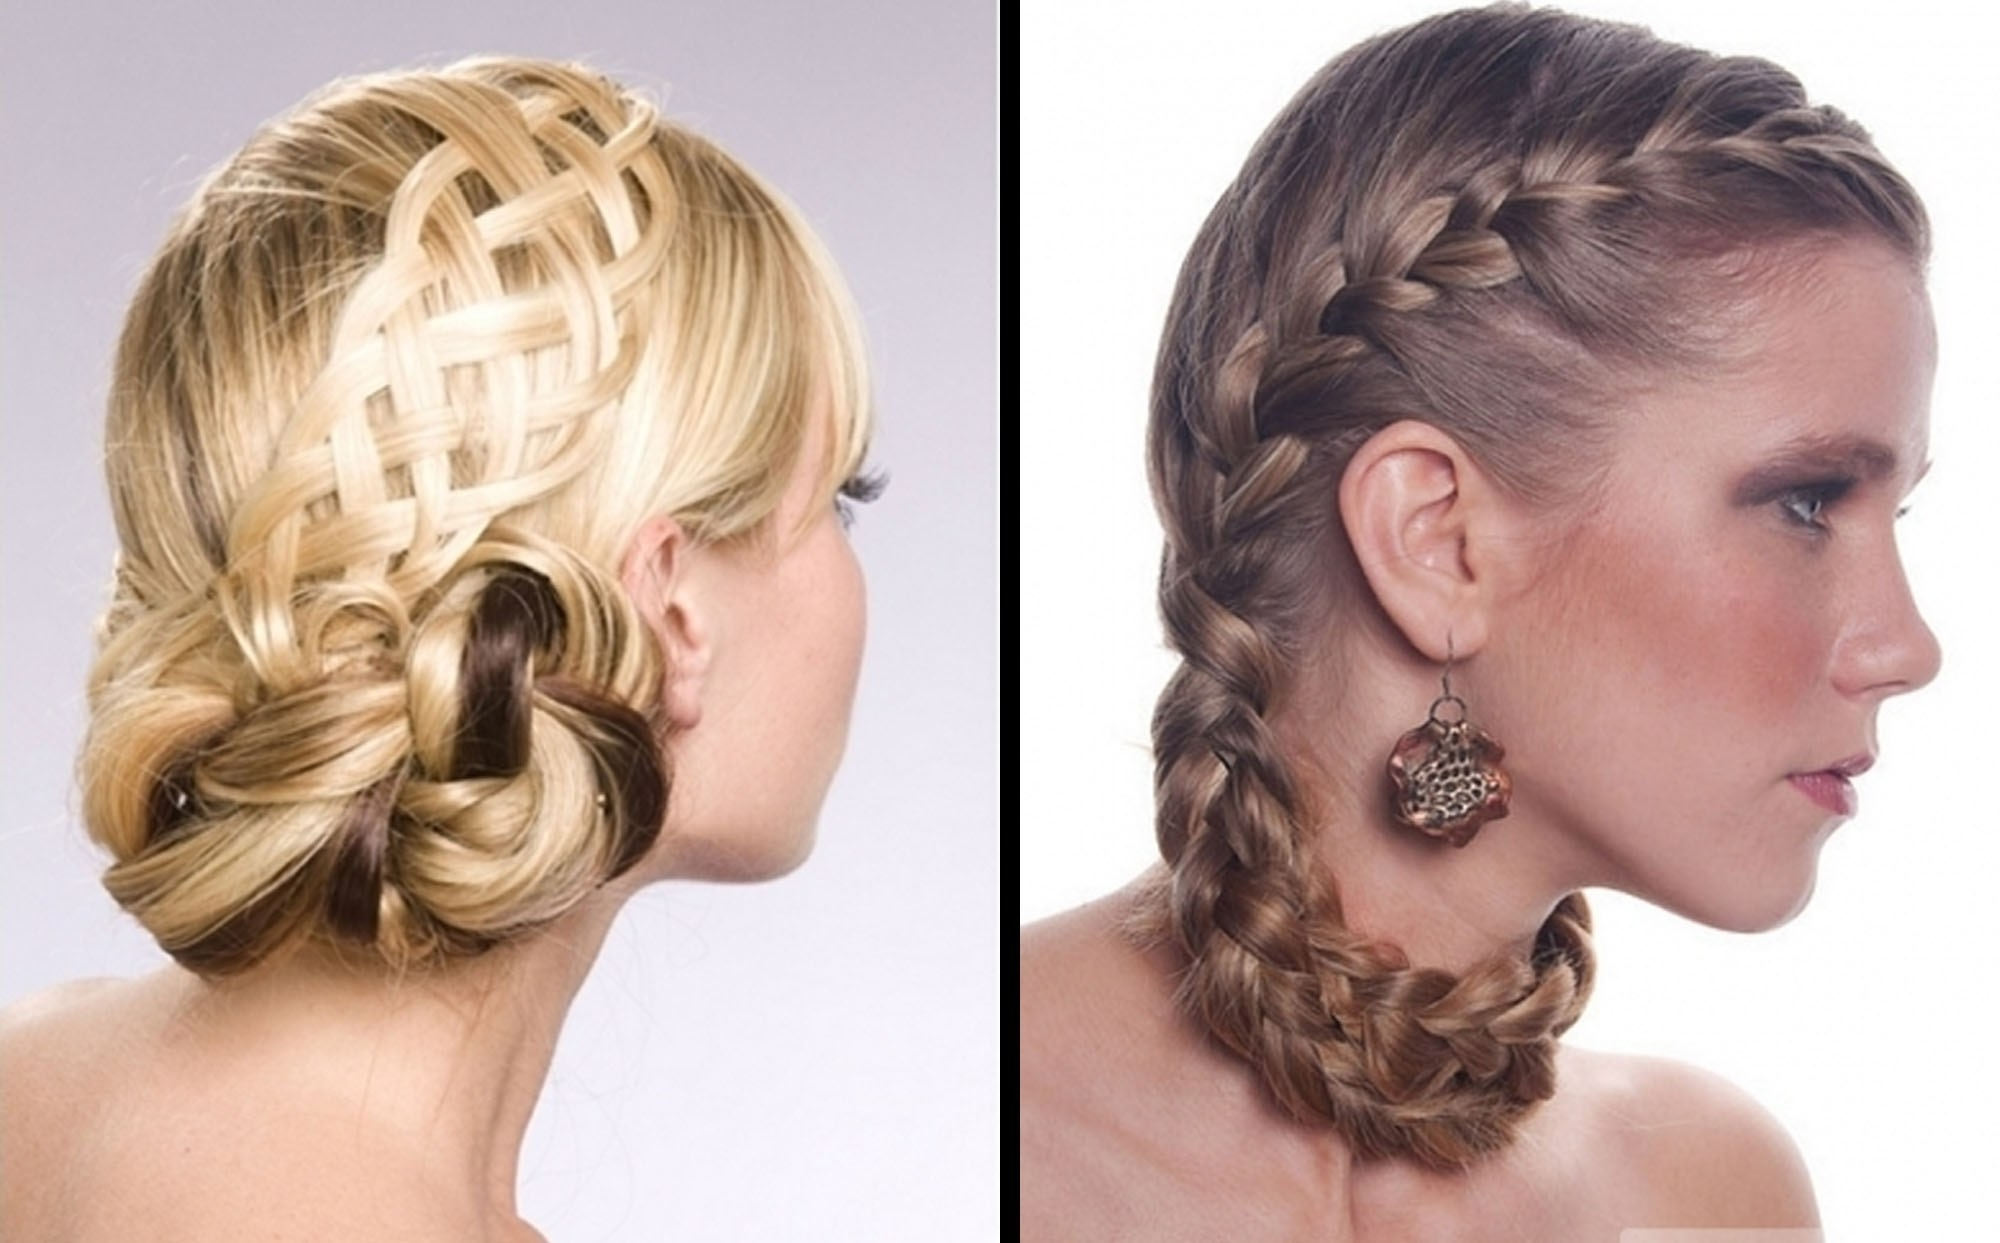 Hairstyles Prom For Short Hair Easy | Medium Hair Styles Ideas – 35491 Inside Prom Updo Hairstyles For Long Hair (View 12 of 15)